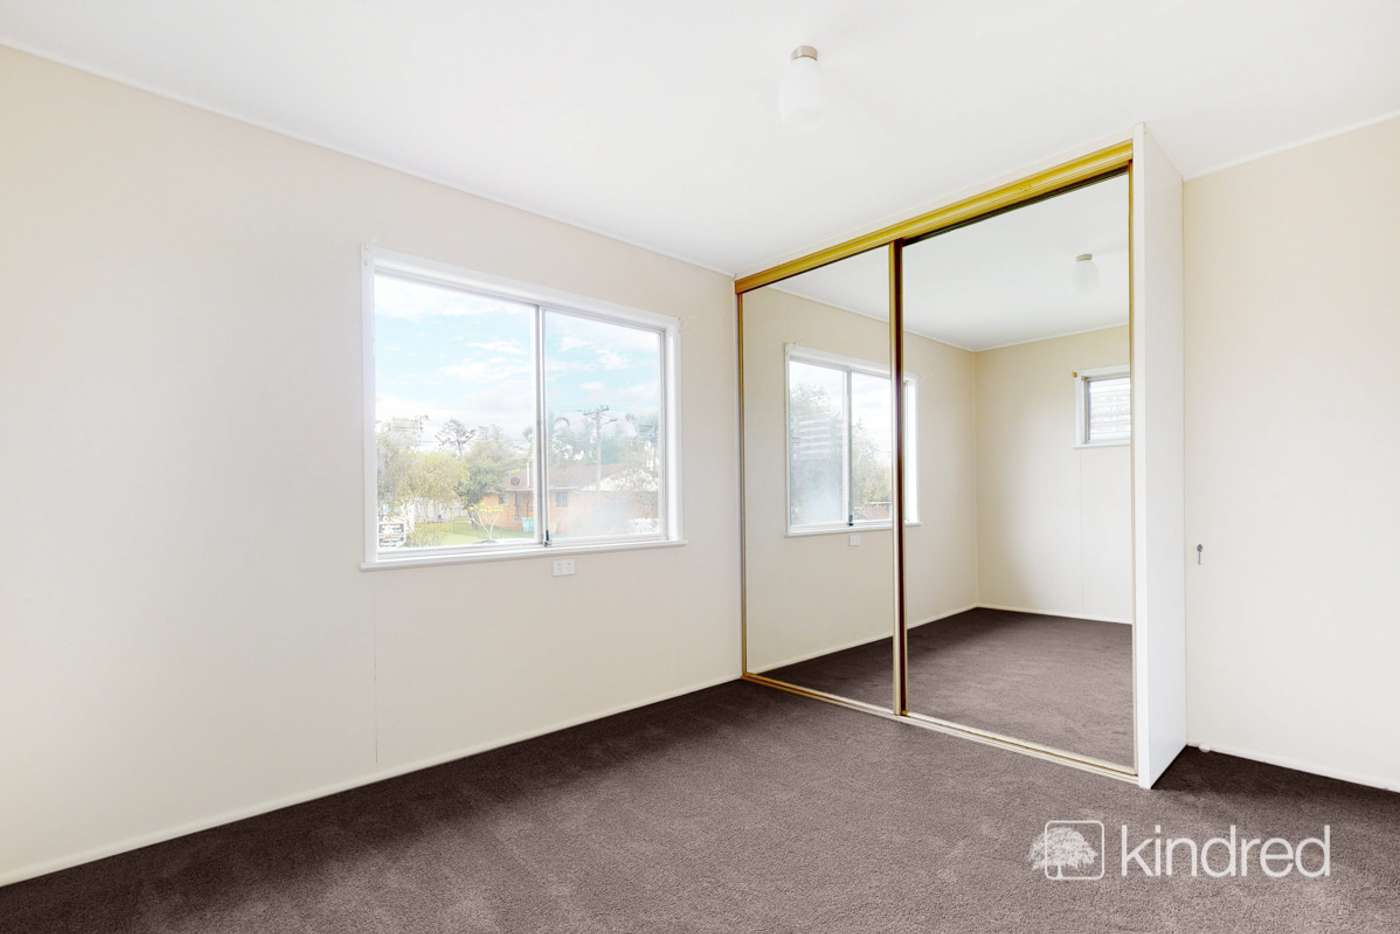 Fifth view of Homely house listing, 15 Kroll Street, Kippa-ring QLD 4021